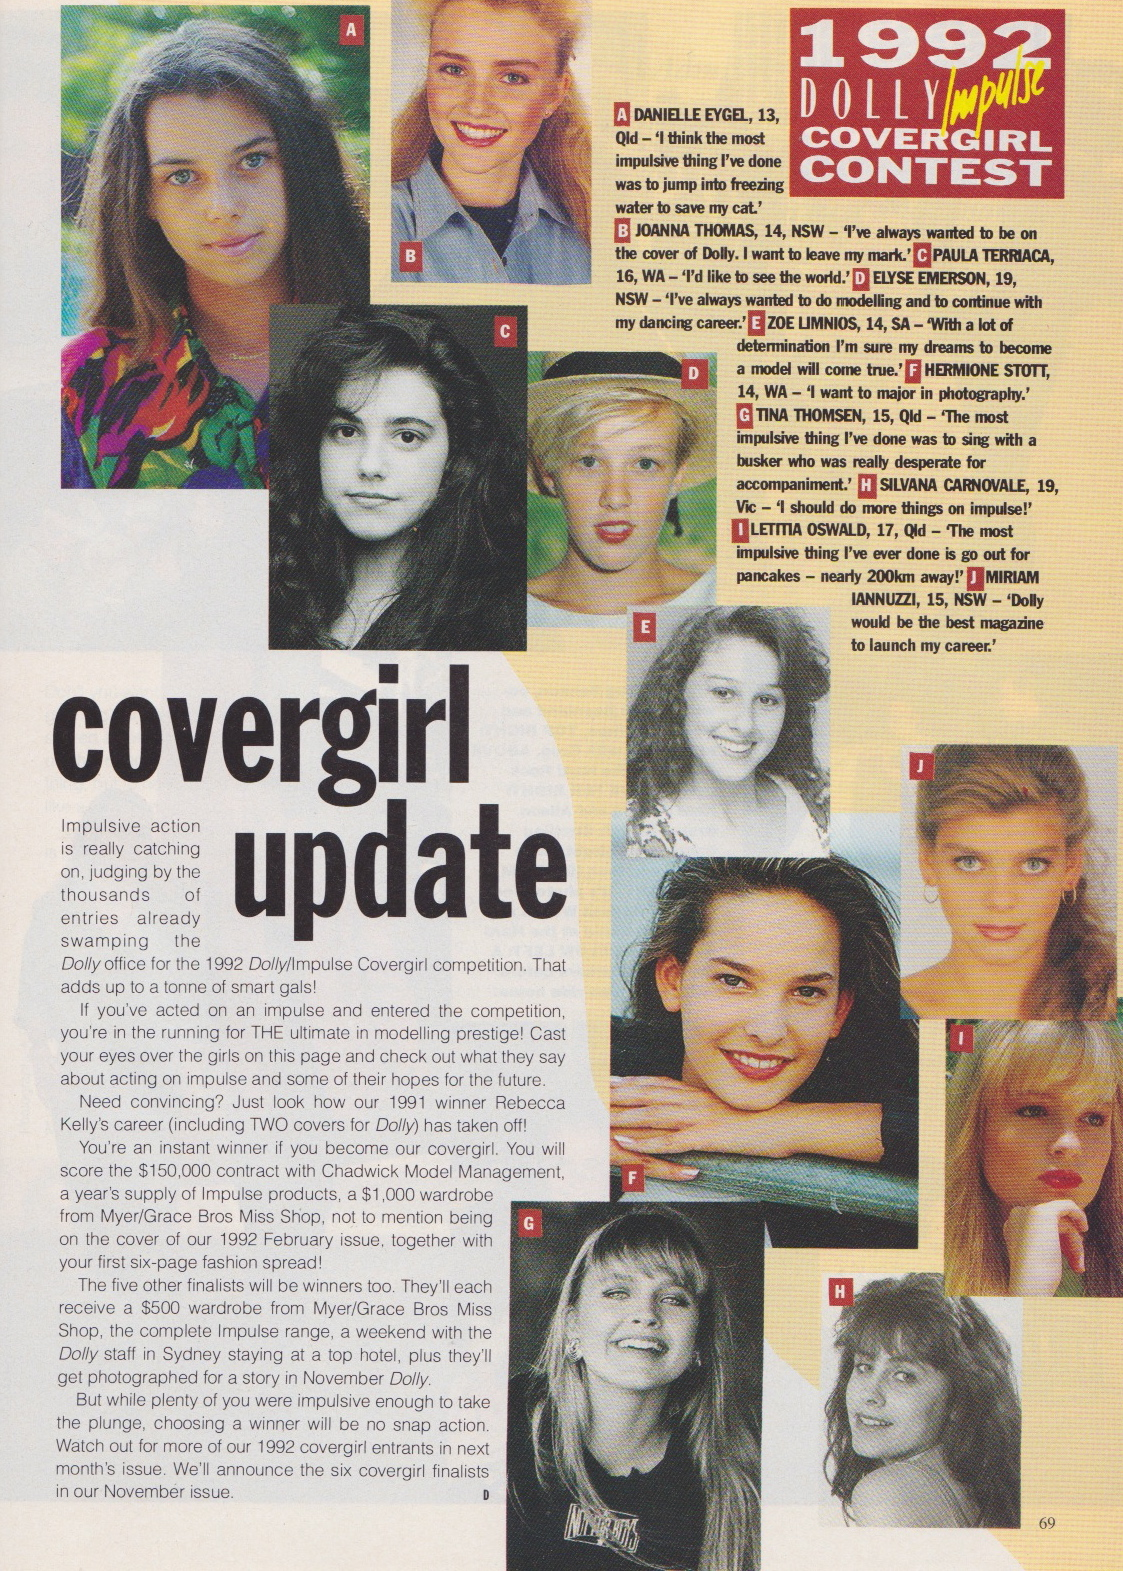 Dolly Covergirl Competition | 1991 Entrants 01.jpeg